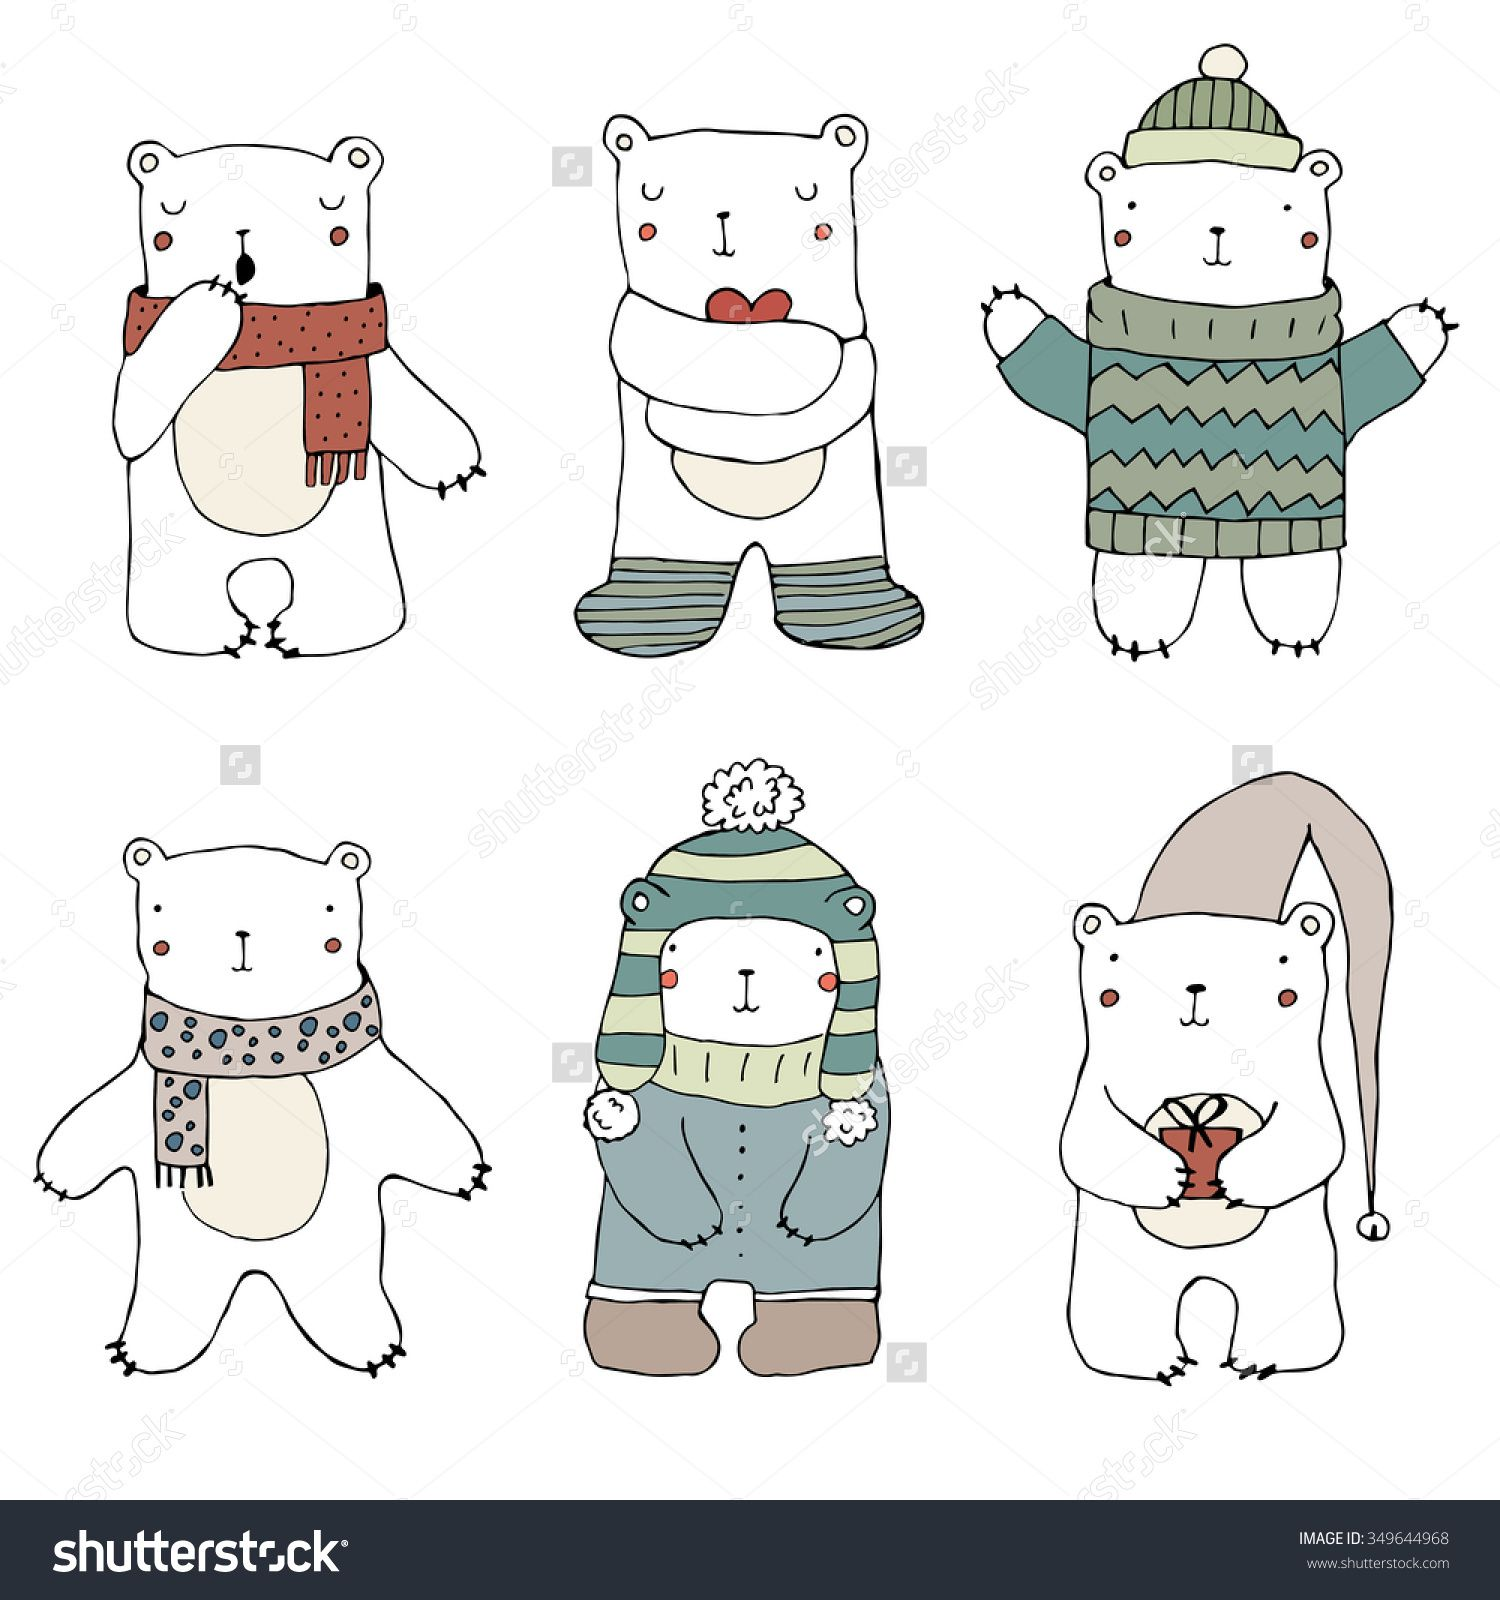 Set Of Cute Polar Bears On White Background. Hand Drawn Illustration. Vector. Isolated. Christmas Childish Pattern. Bears In Clothing - Hat, Sweater, Scarf, Cap. Cute Teddy Bear Collection. - 349644968 : Shutterstock